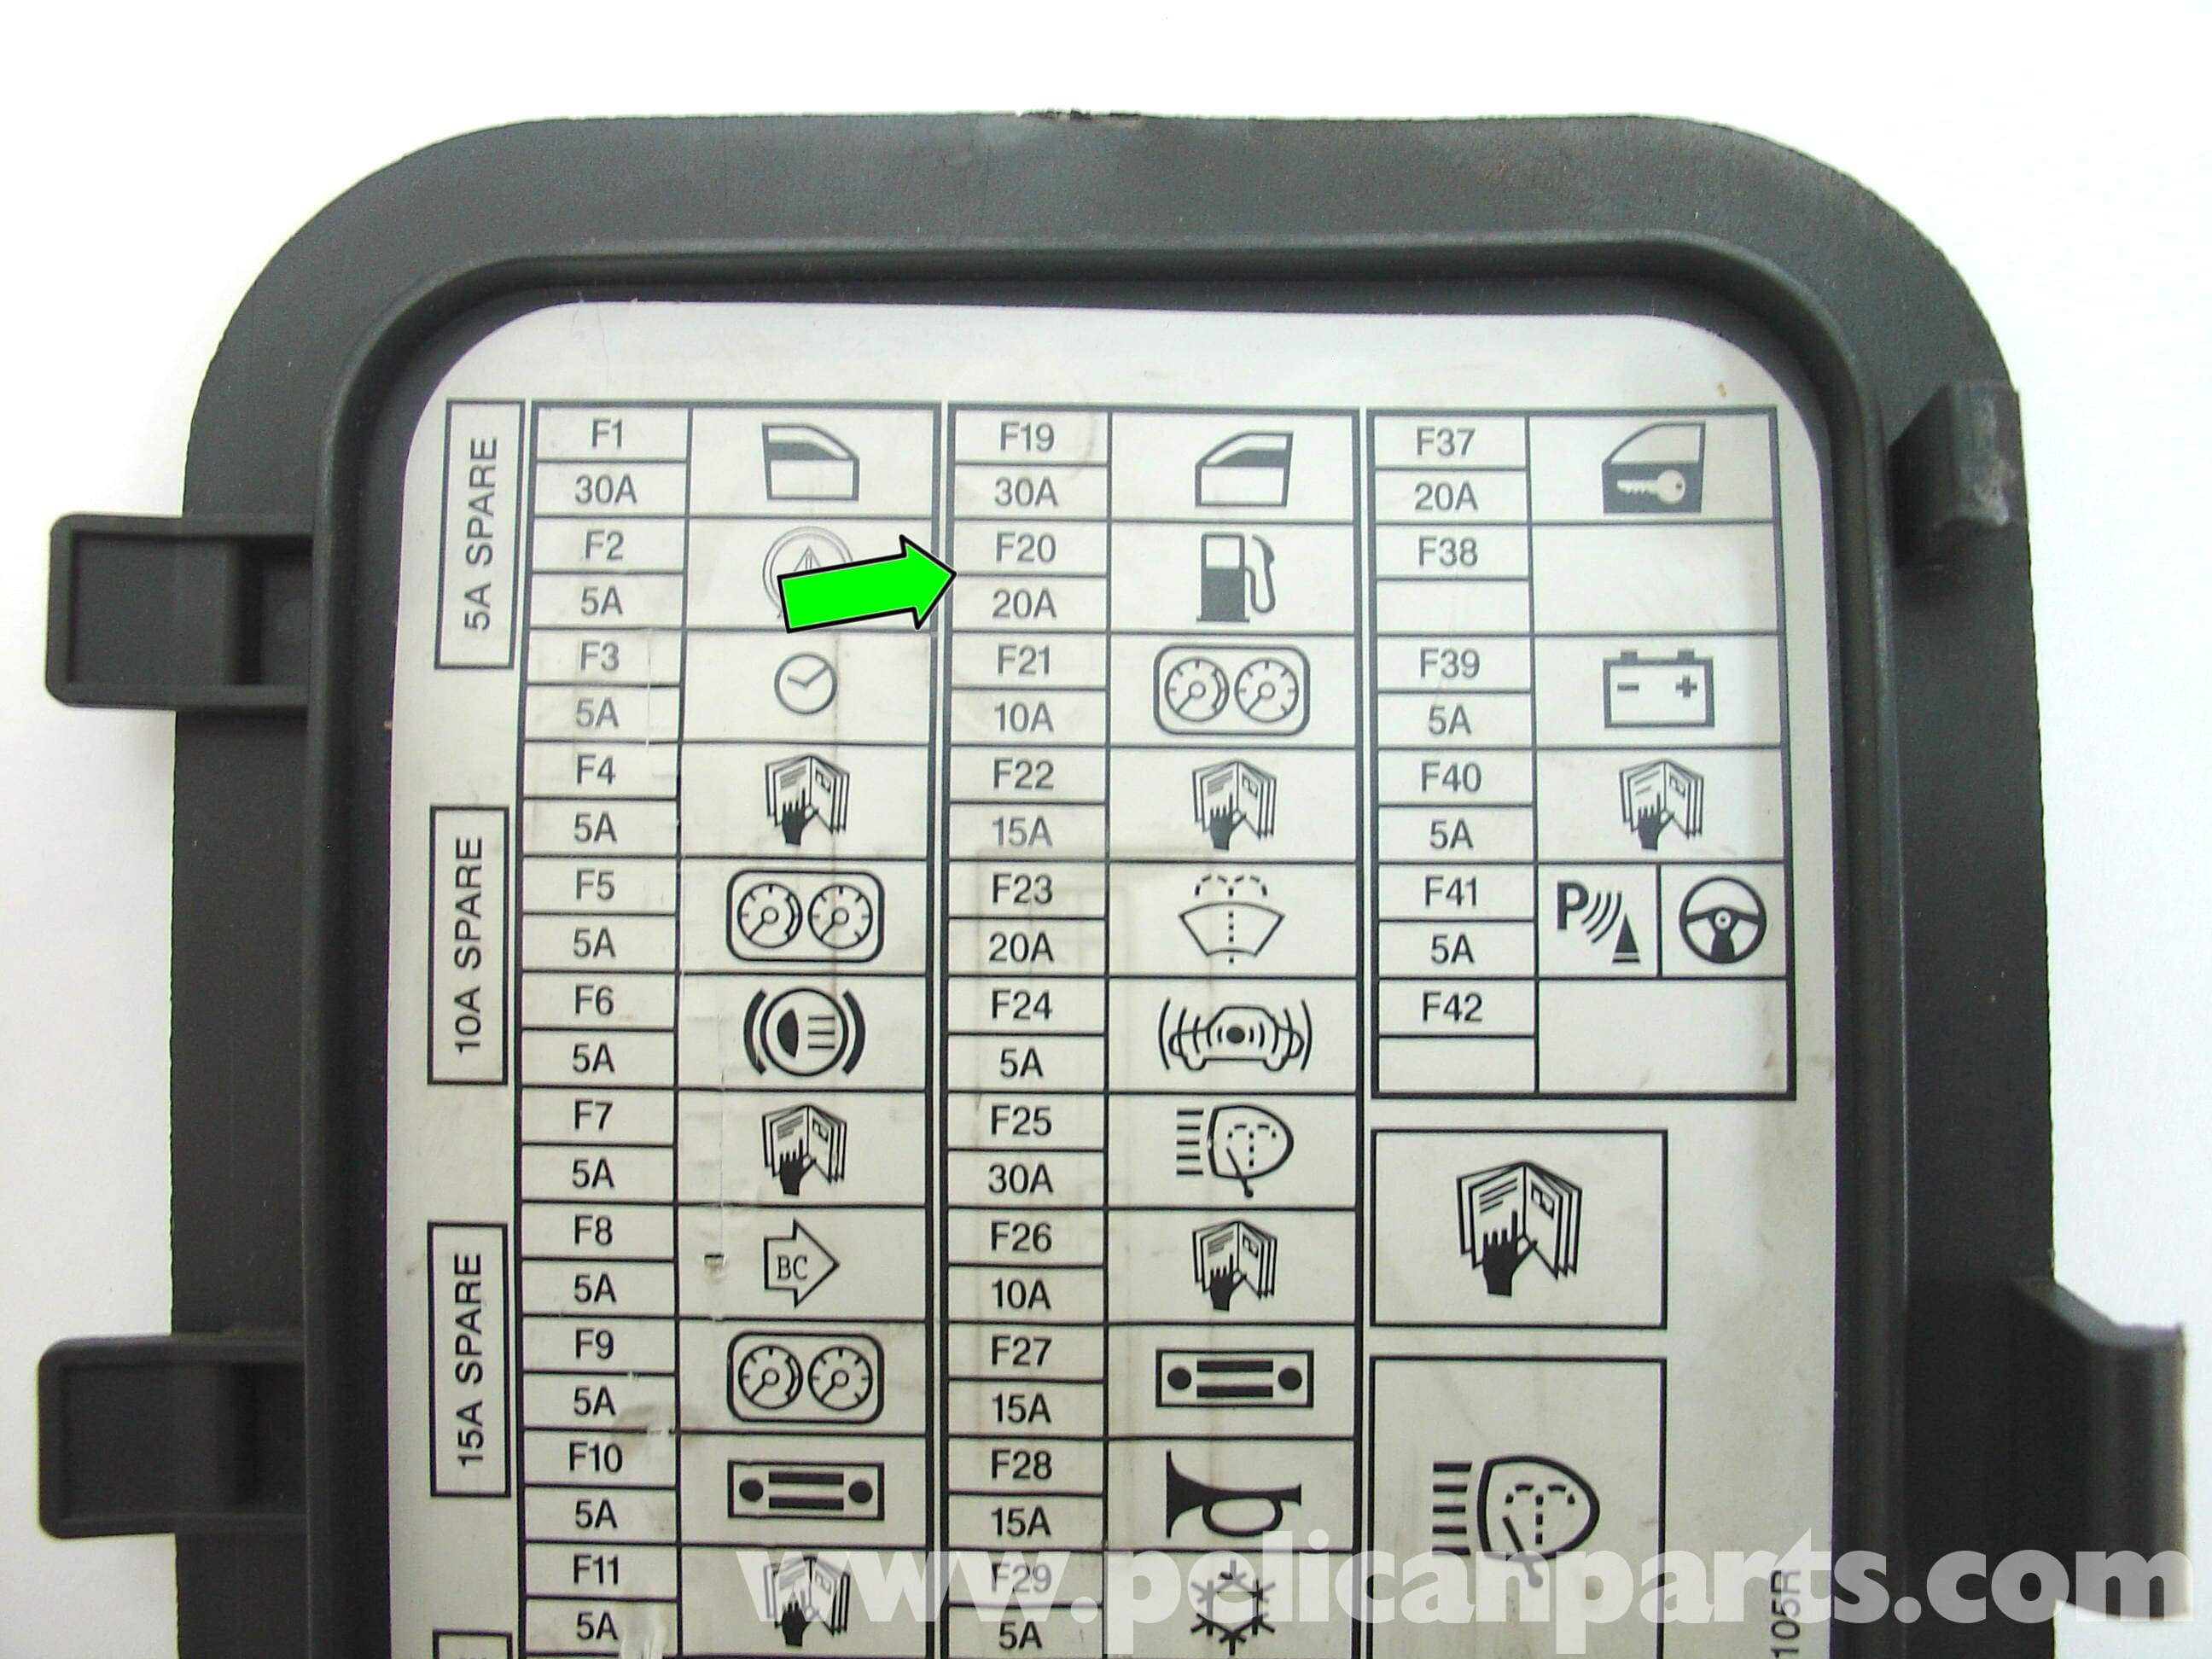 Fuse Box On Honda Fit 2011 Data Schema 2012 Odyssey Diagram Mini Cooper Fuel Pump And Filter Replacement R50 R52 R53 2000 Locations 2009